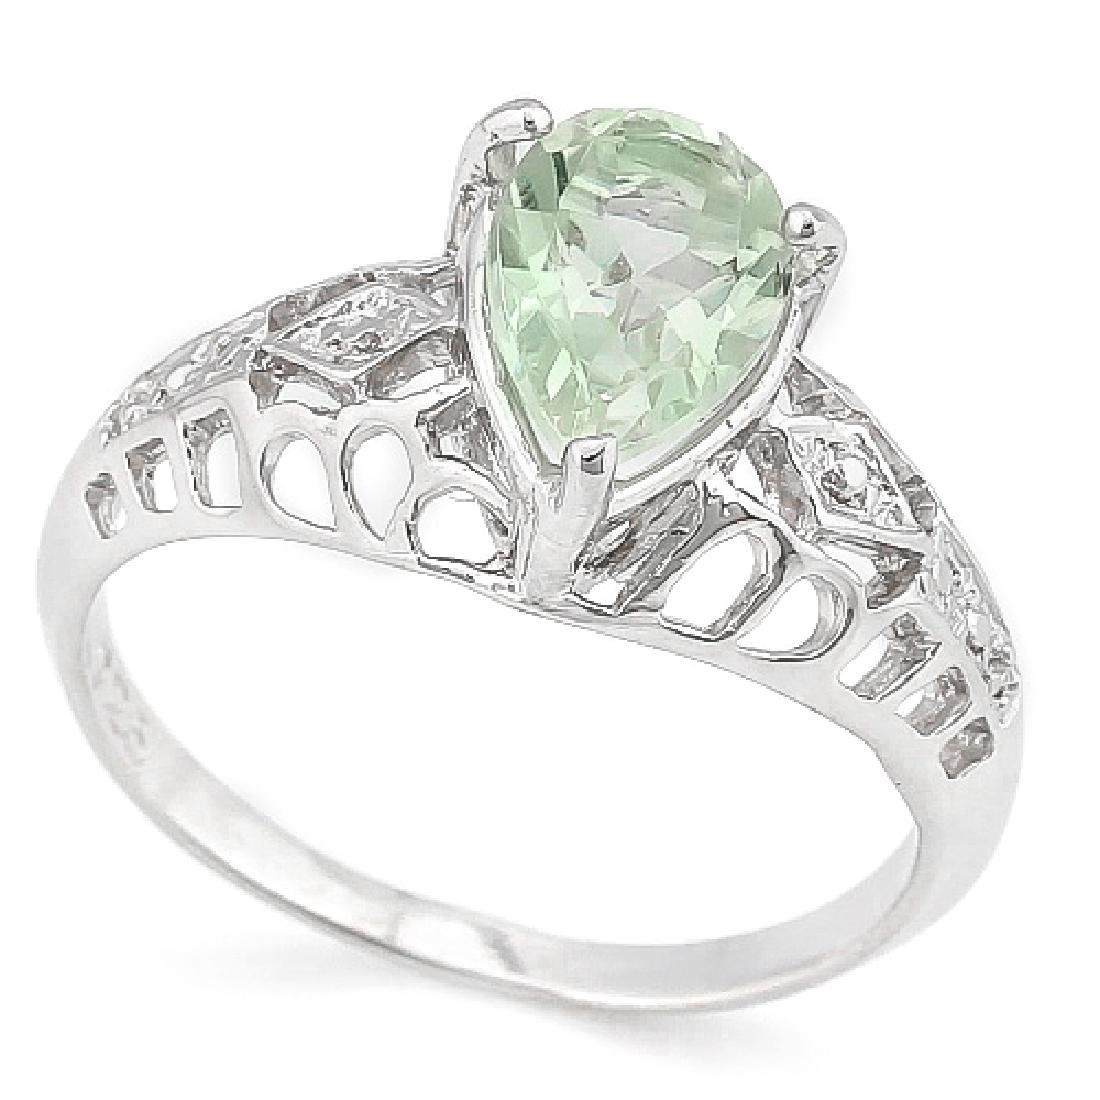 1 1/5 CARAT GREEN AMETHYST & DIAMOND 925 STERLING SILVE